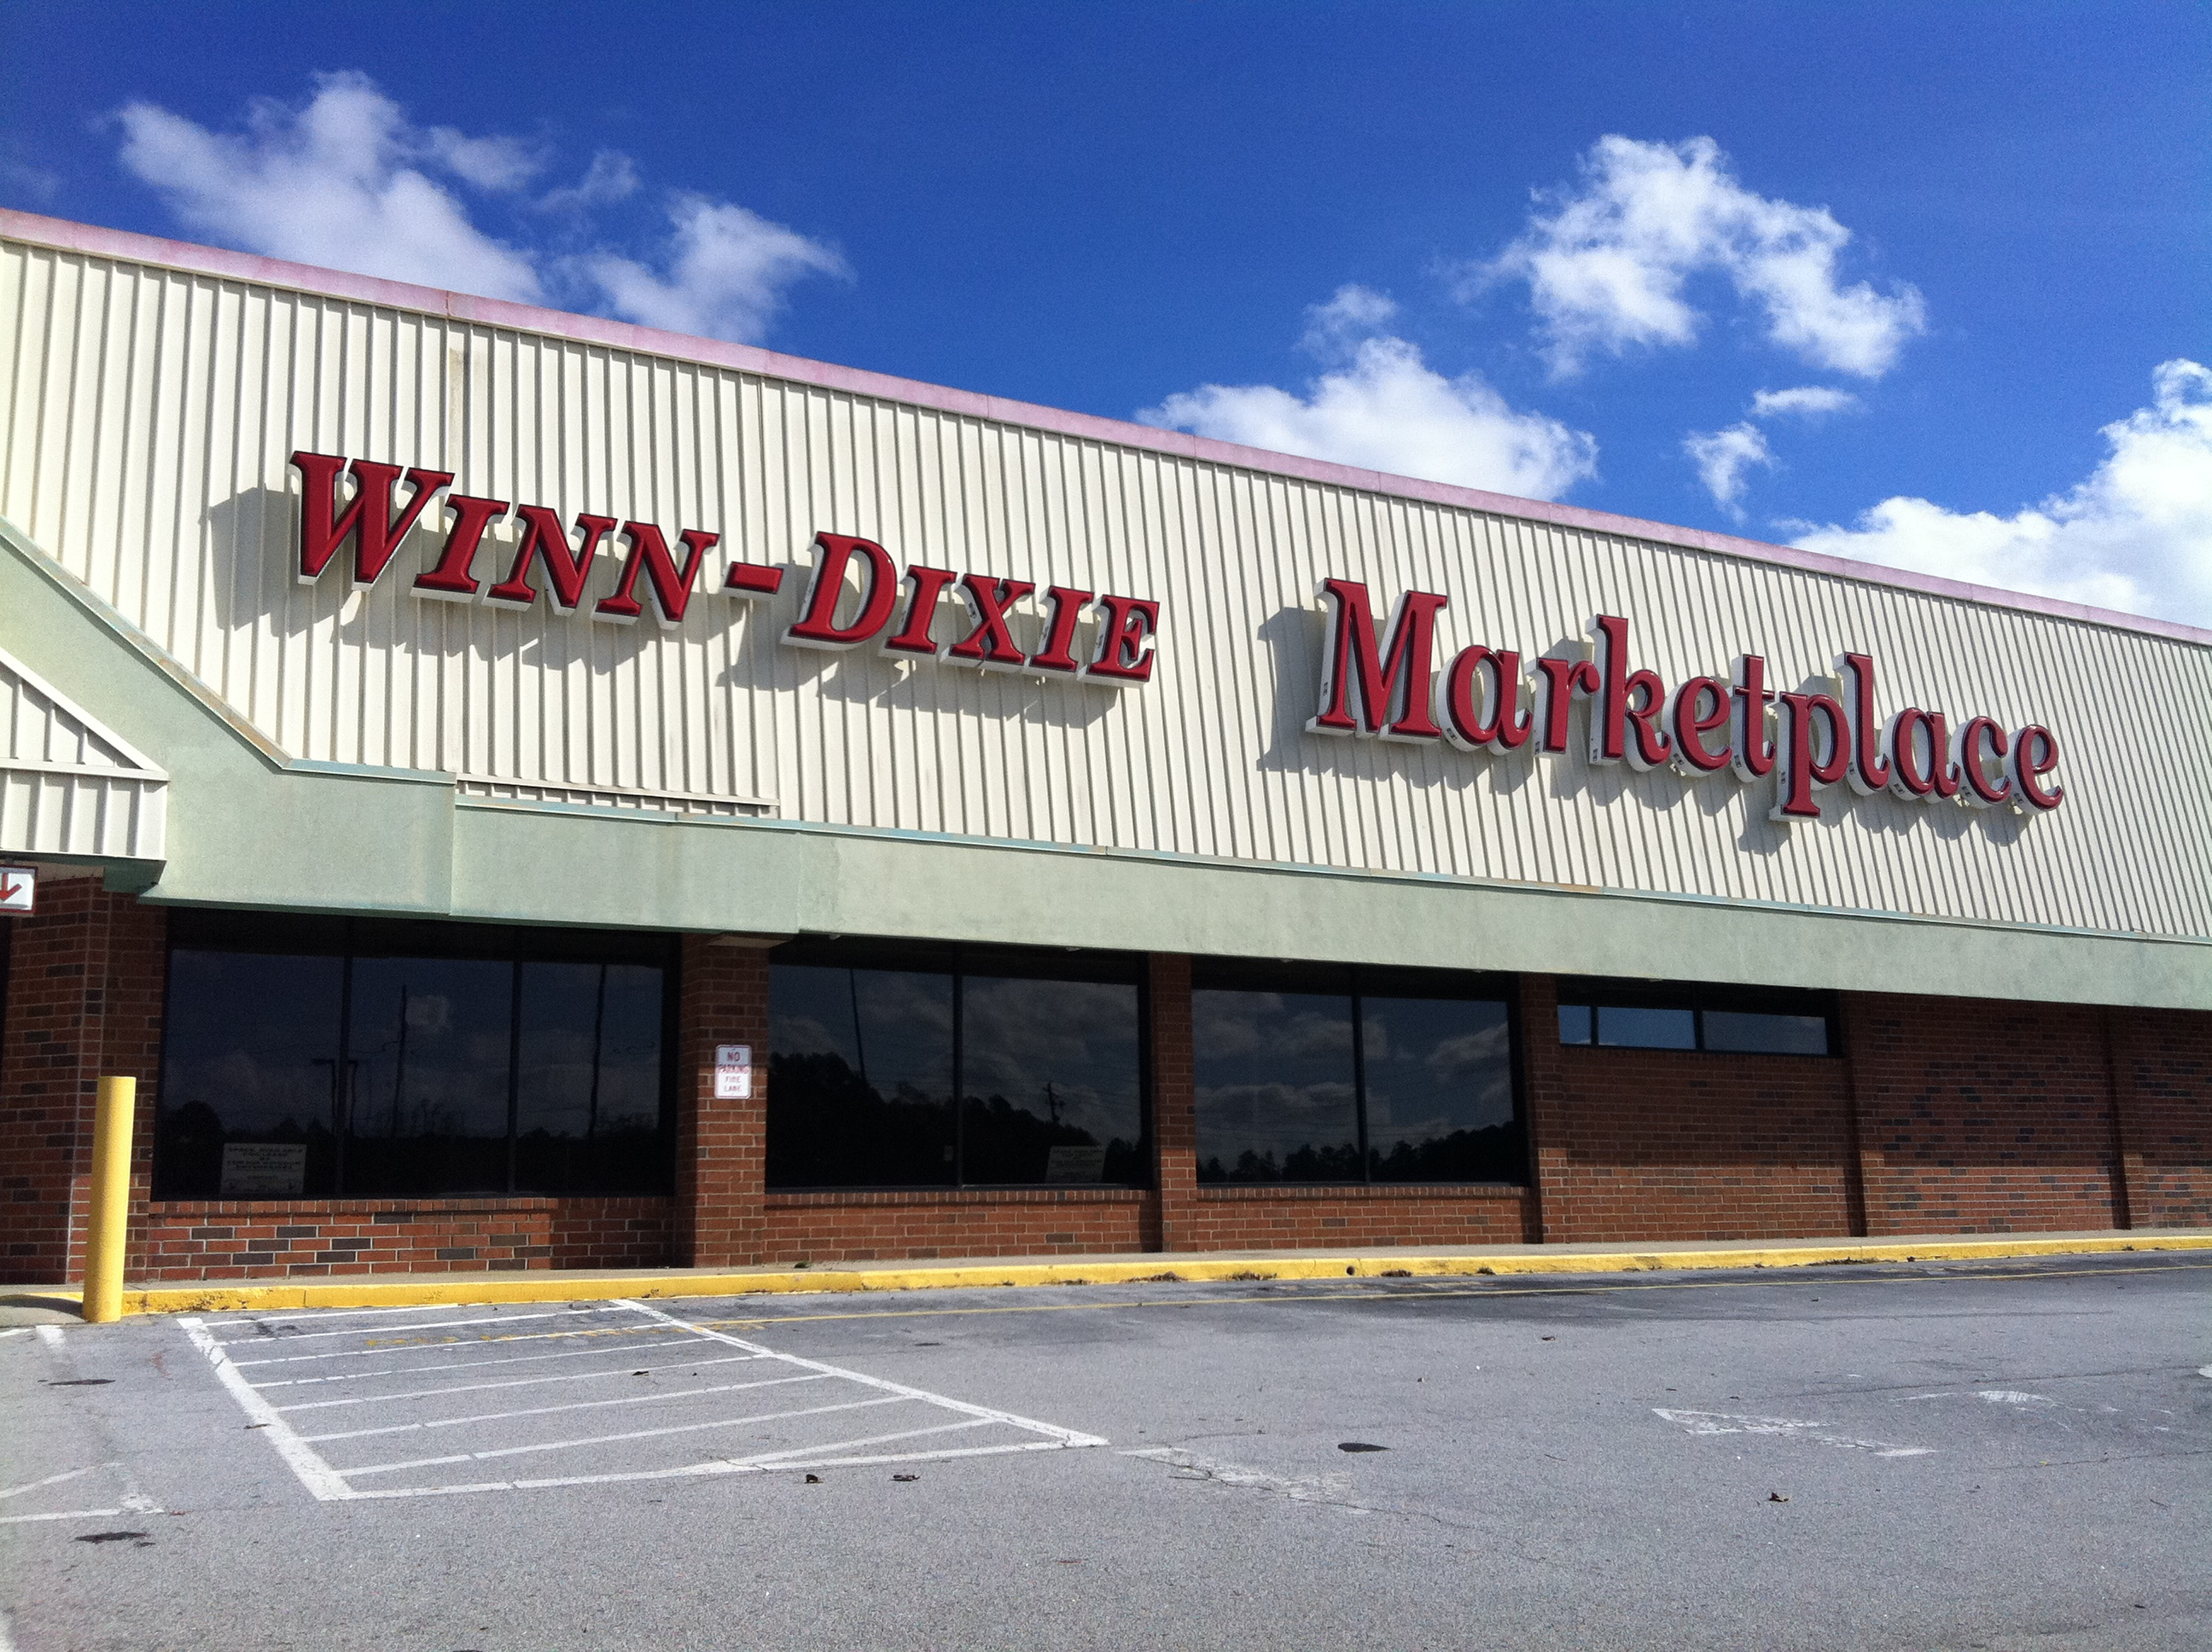 Winn Dixie Marketplace